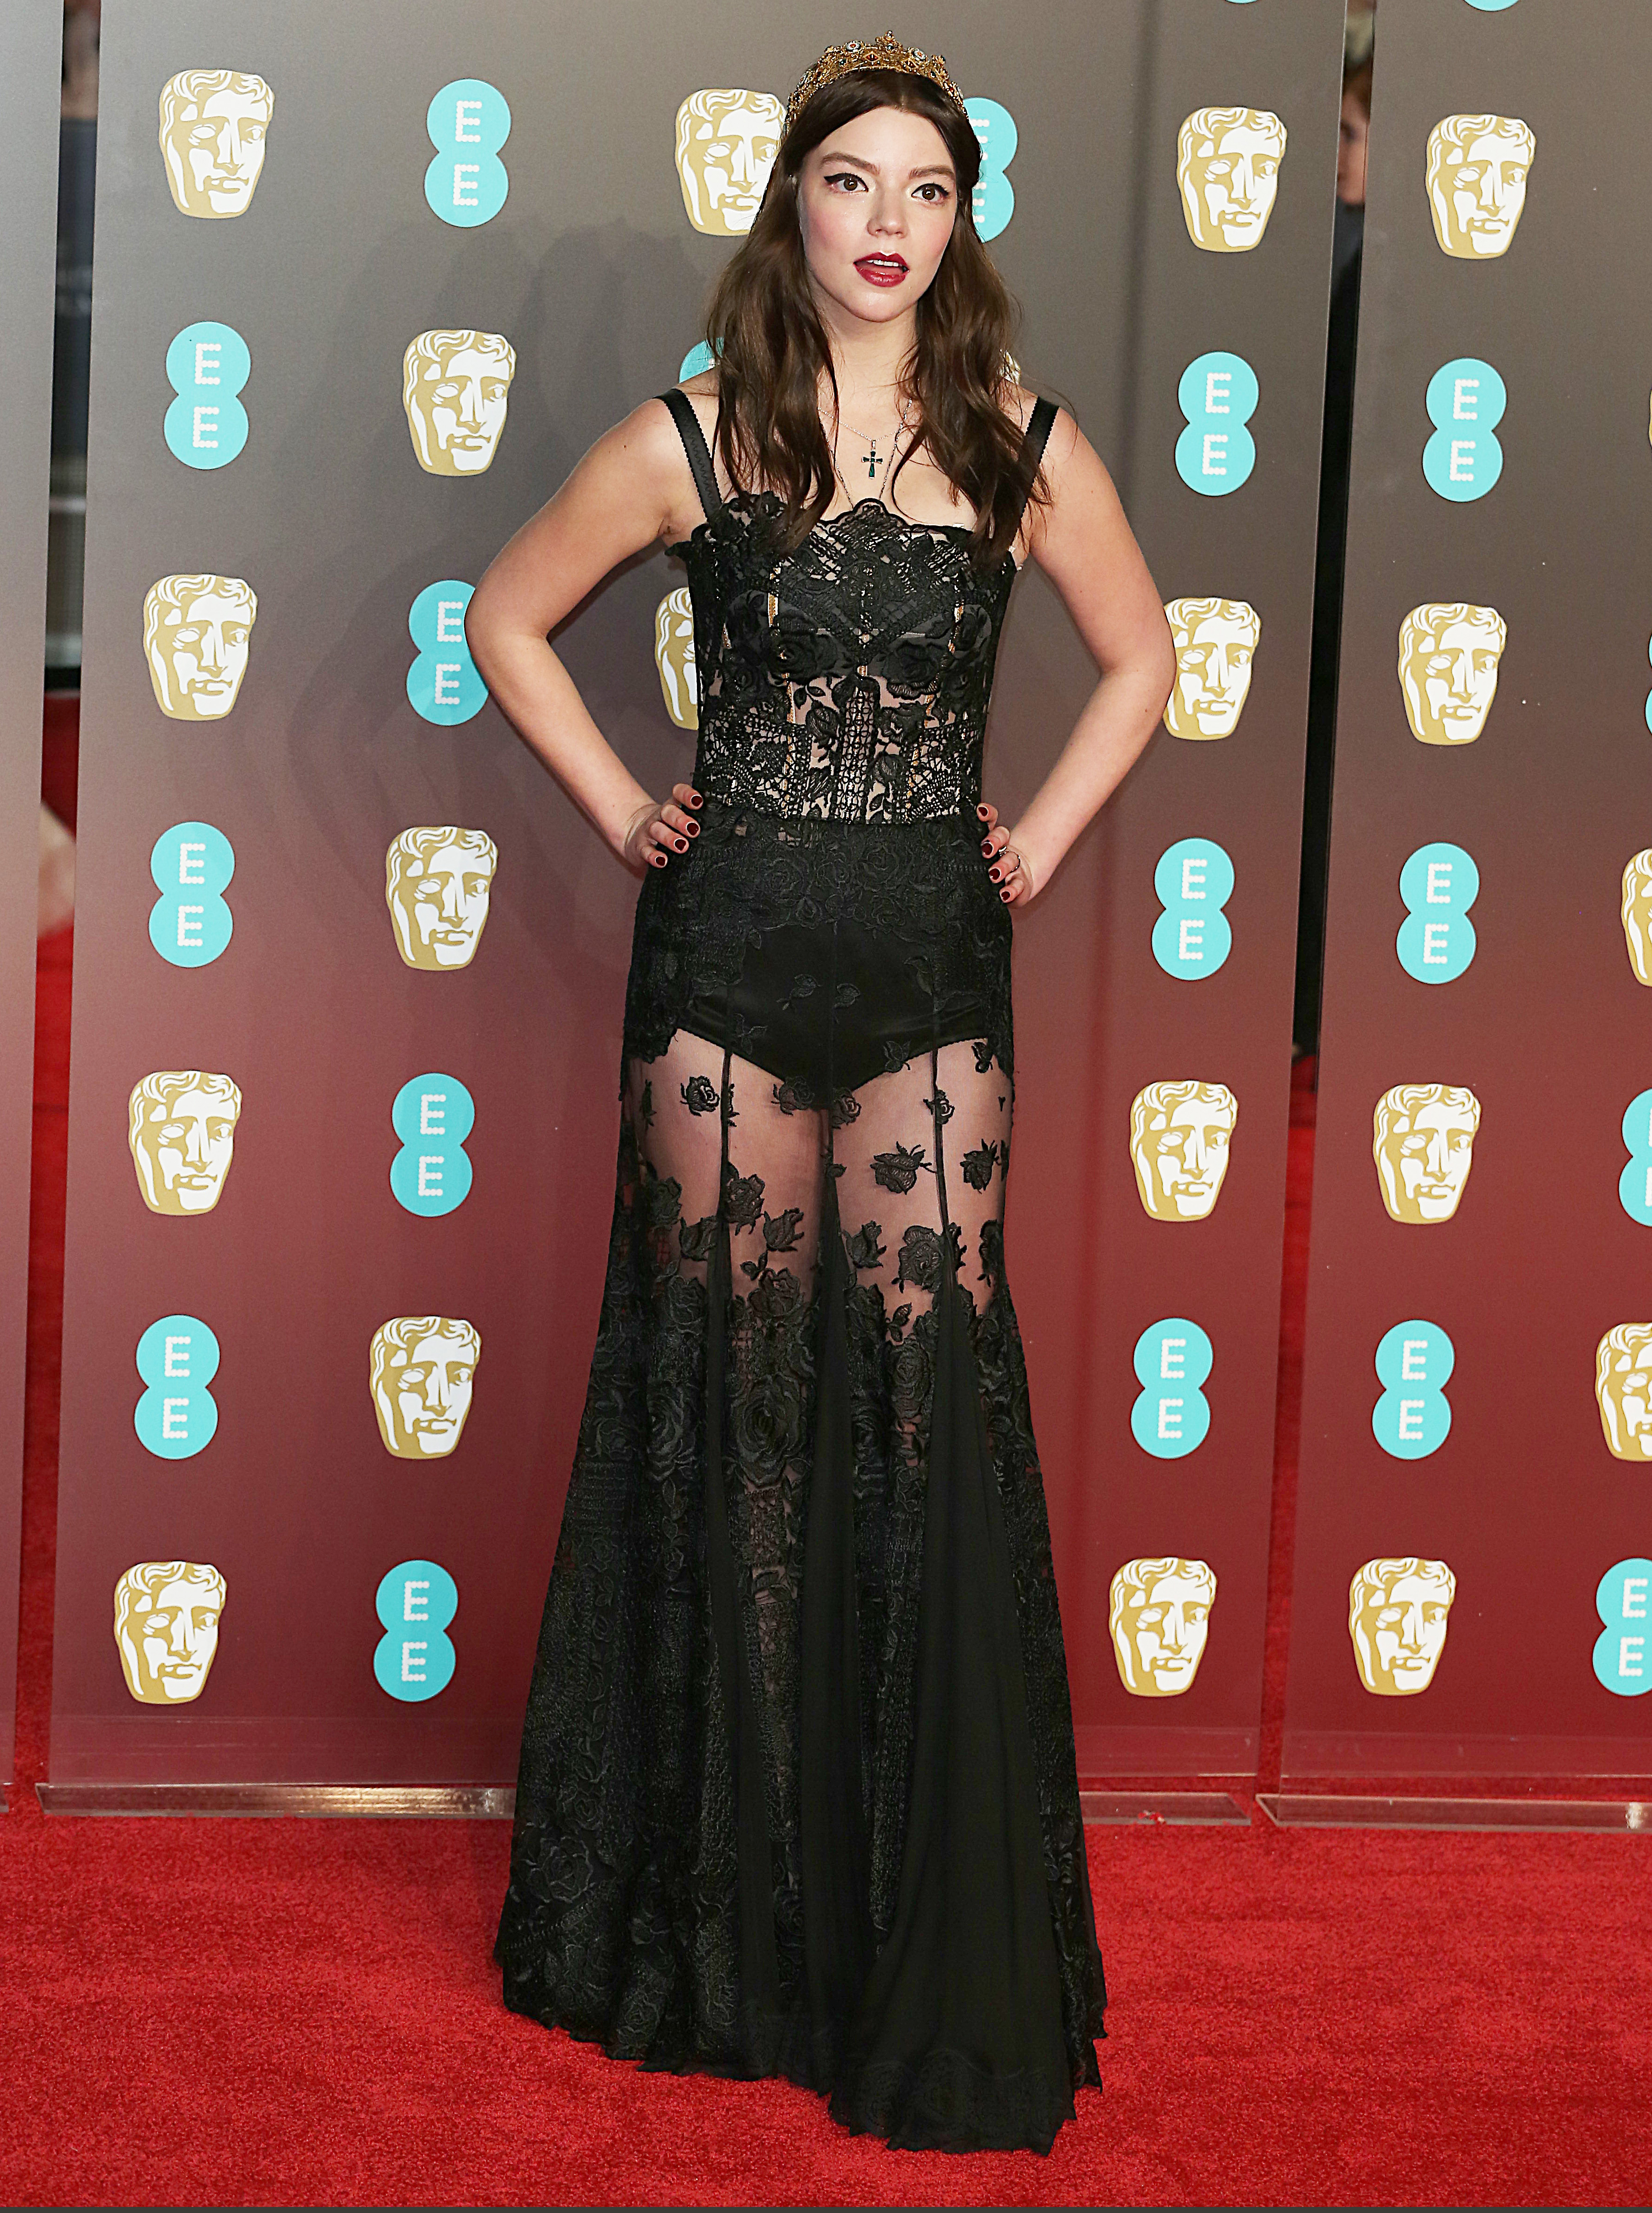 EE British Academy Film Awards 2018 (BAFTAs), Royal Albert Hall, London UK, 18 February 2018, Photo by Brett D. Cove <P> Pictured: Anya Taylor-Joy <B>Ref: SPL1661269  190218  </B><BR/> Picture by: Brett D. Cove / Splash News<BR/> </P><P> <B>Splash News and Pictures</B><BR/> Los Angeles:310-821-2666<BR/> New York:212-619-2666<BR/> London:870-934-2666<BR/> <span id=